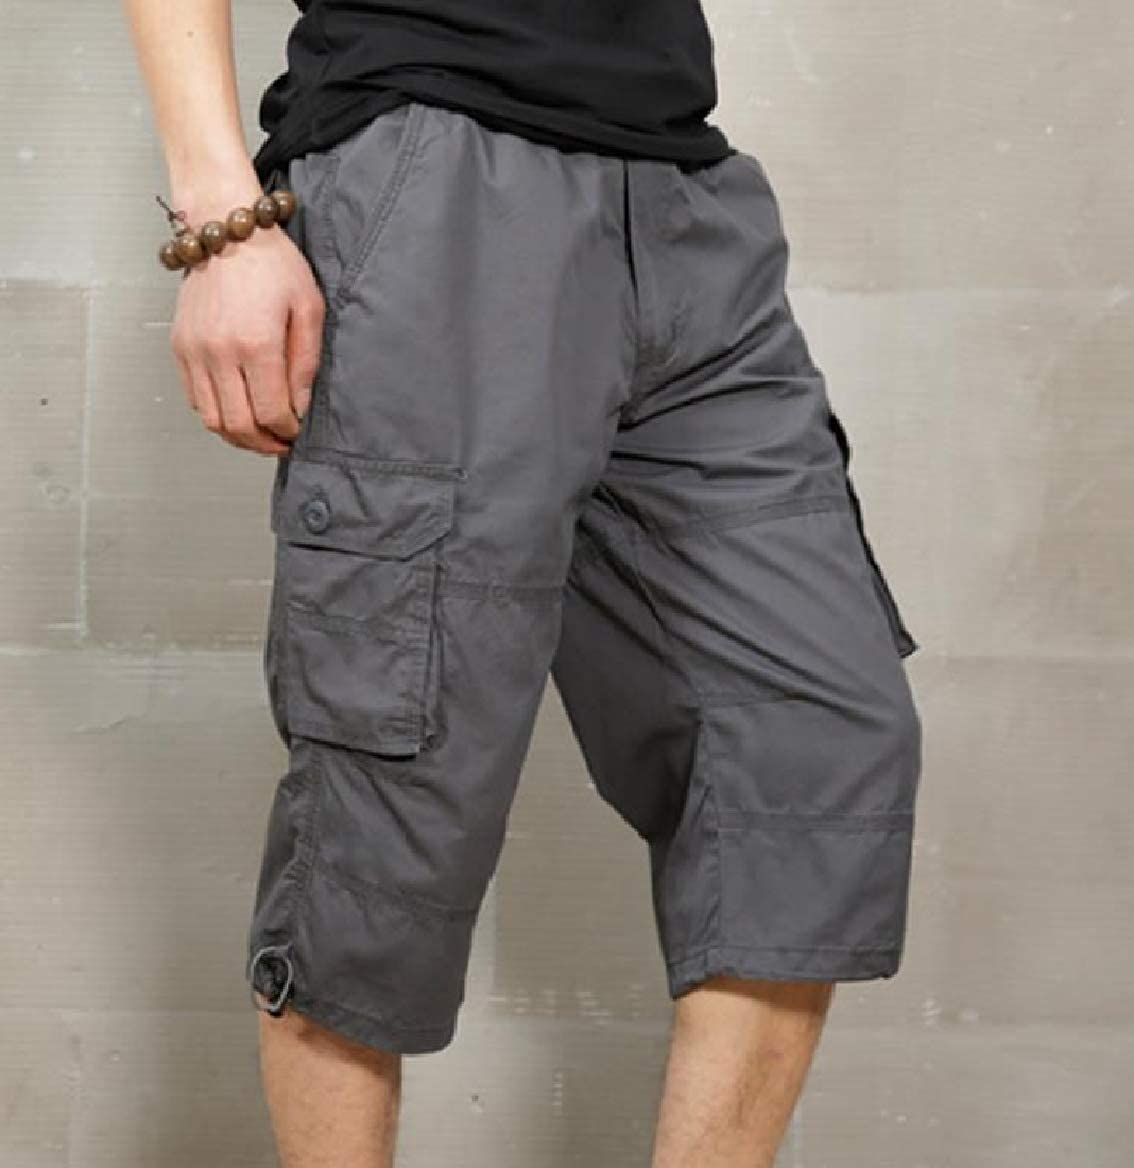 Tootless-Men Solid Colored Capri Fashion Summer Multi Pockets Rip Stop Pants